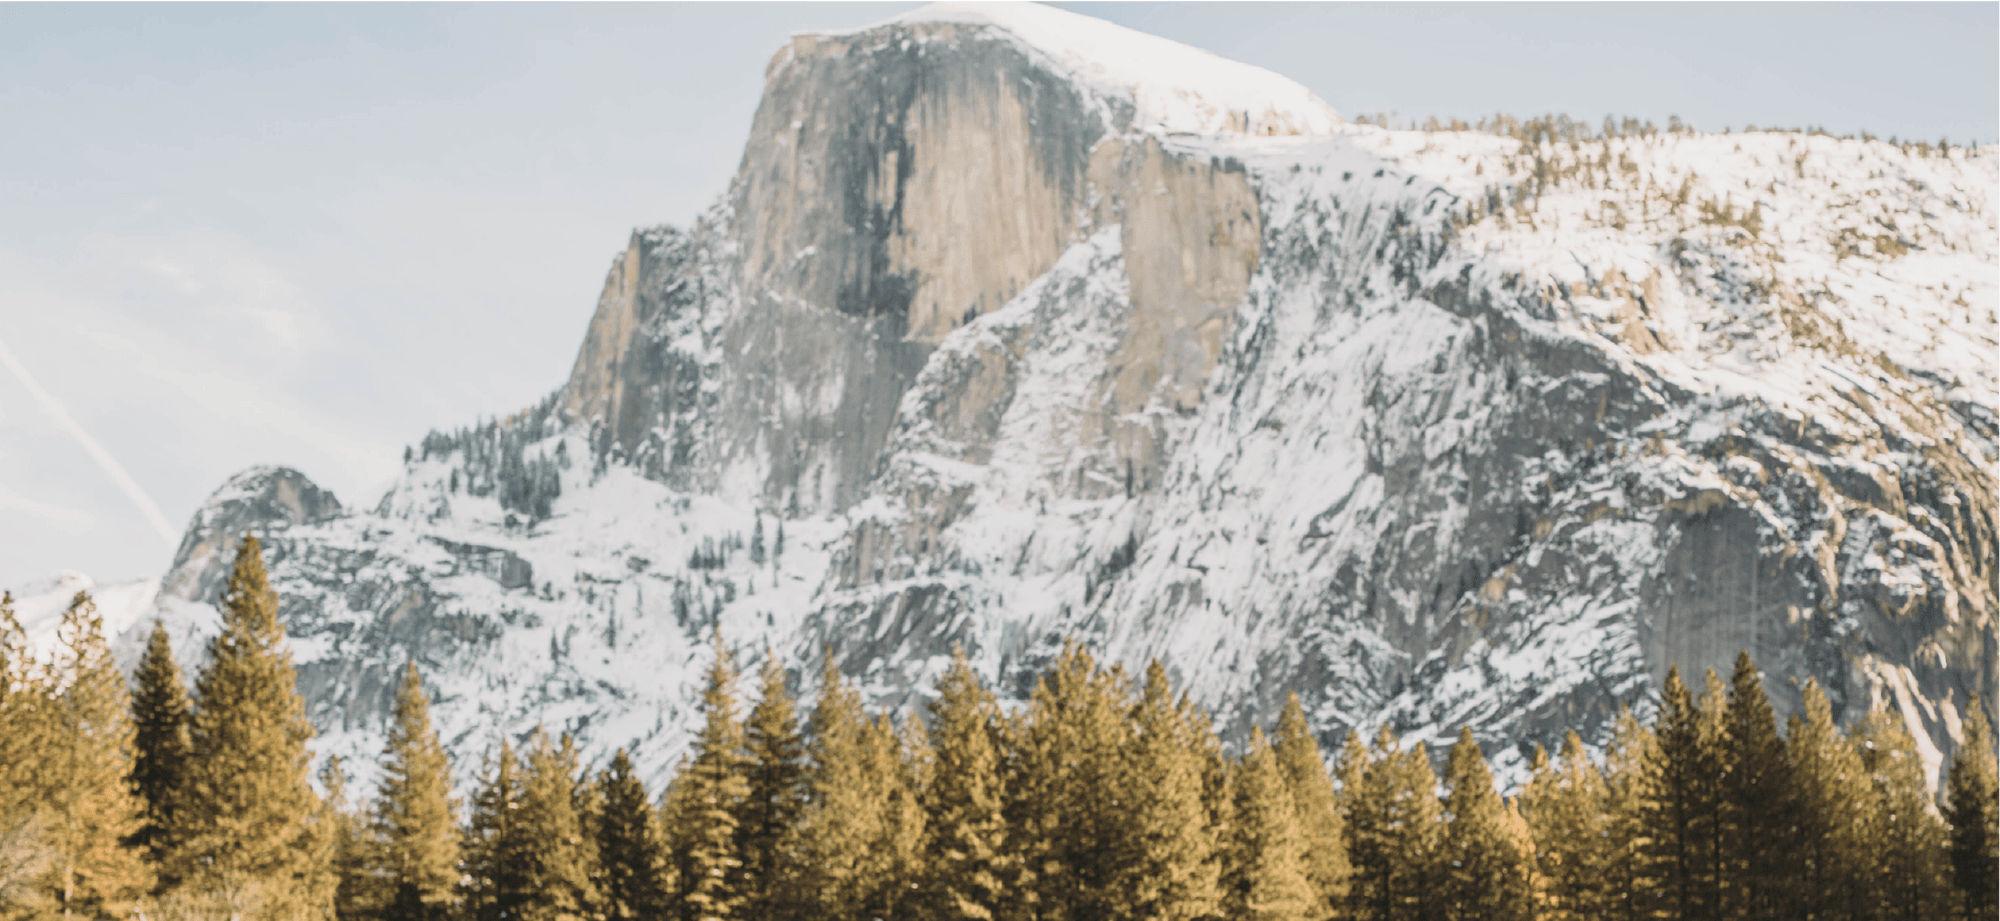 7 Best winter landscapes Photography locations in the U.S